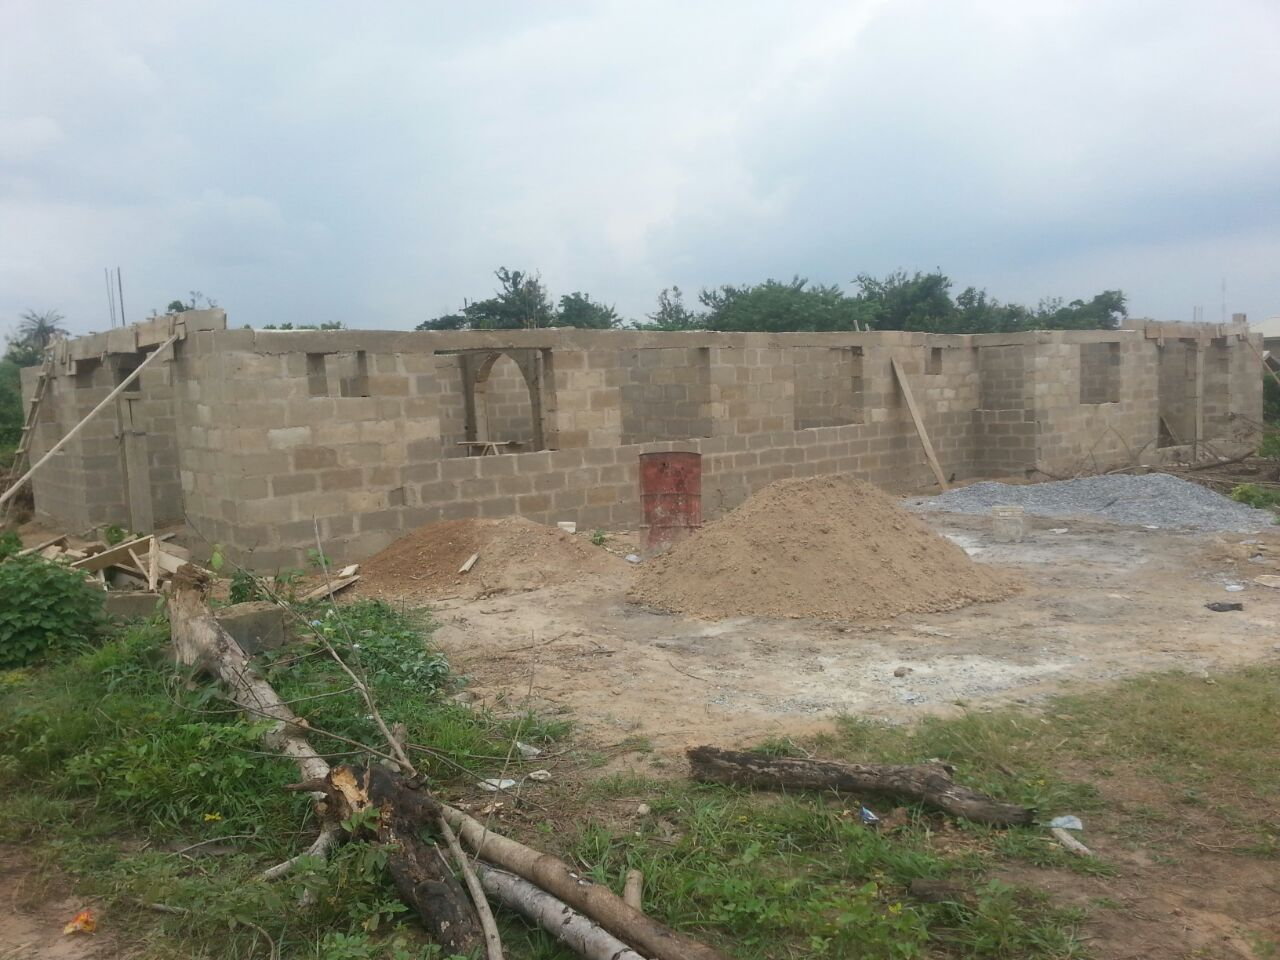 Cost Of Building 2 Flat 3 Bedroom Each In Ibadan Properties Average Rewiring A 4 Bed House The First Pics Was From Foundation To Lintel Which Me About 12m I Spent 400k On Attached Here Is Picture After